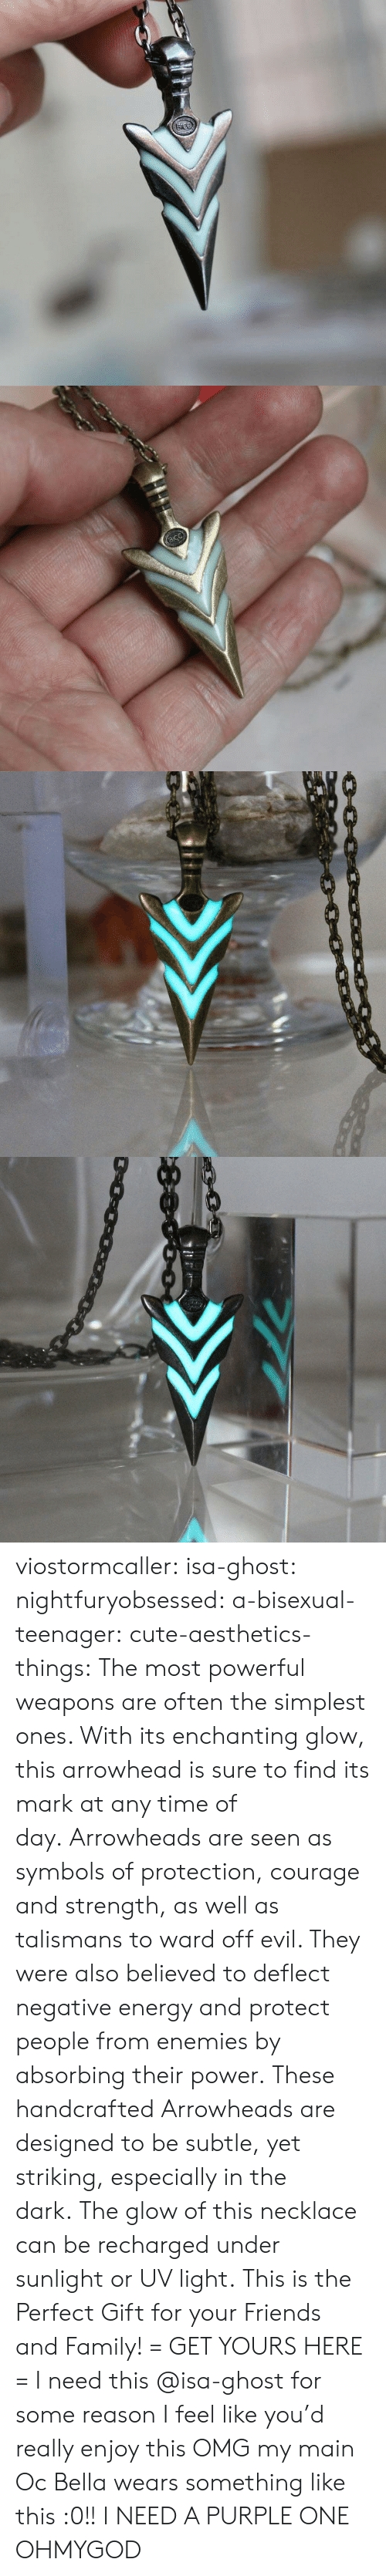 Cute, Energy, and Family: acc   0000c0 viostormcaller:  isa-ghost:  nightfuryobsessed: a-bisexual-teenager:  cute-aesthetics-things:  The most powerful weapons are often the simplest ones. With its enchanting glow, this arrowhead is sure to find its mark at any time of day. Arrowheads are seen as symbols of protection, courage and strength, as well as talismans to ward off evil. They were also believed to deflect negative energy and protect people from enemies by absorbing their power. These handcrafted Arrowheads are designed to be subtle, yet striking, especially in the dark. The glow of this necklace can be recharged under sunlight or UV light. This is the Perfect Gift for your Friends and Family! = GET YOURS HERE =   I need this  @isa-ghost for some reason I feel like you'd really enjoy this  OMG my main Oc Bella wears something like this :0!!  I NEED A PURPLE ONE OHMYGOD